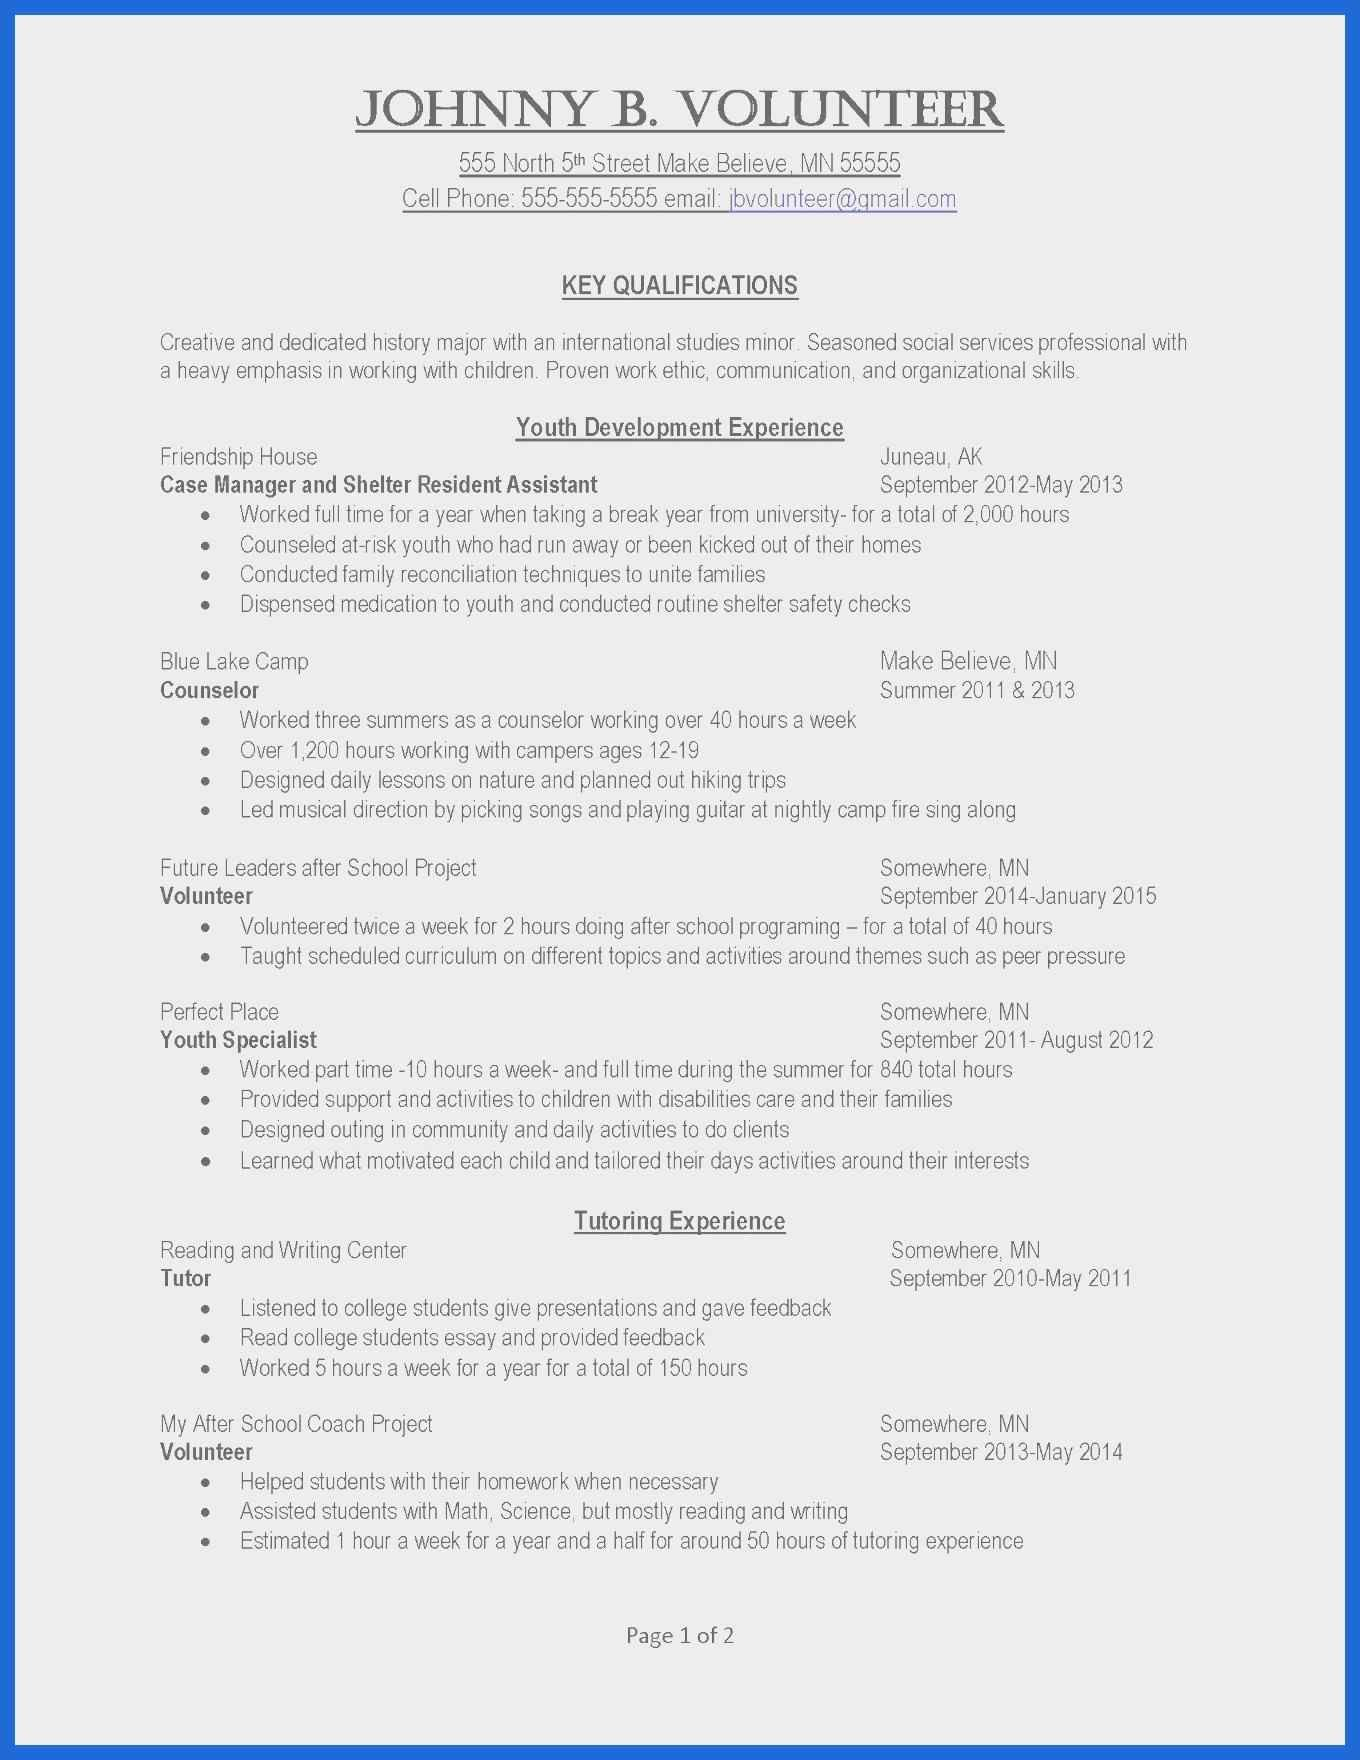 Cv Template For Over 40 Resume Cover Letter Examples Job Resume